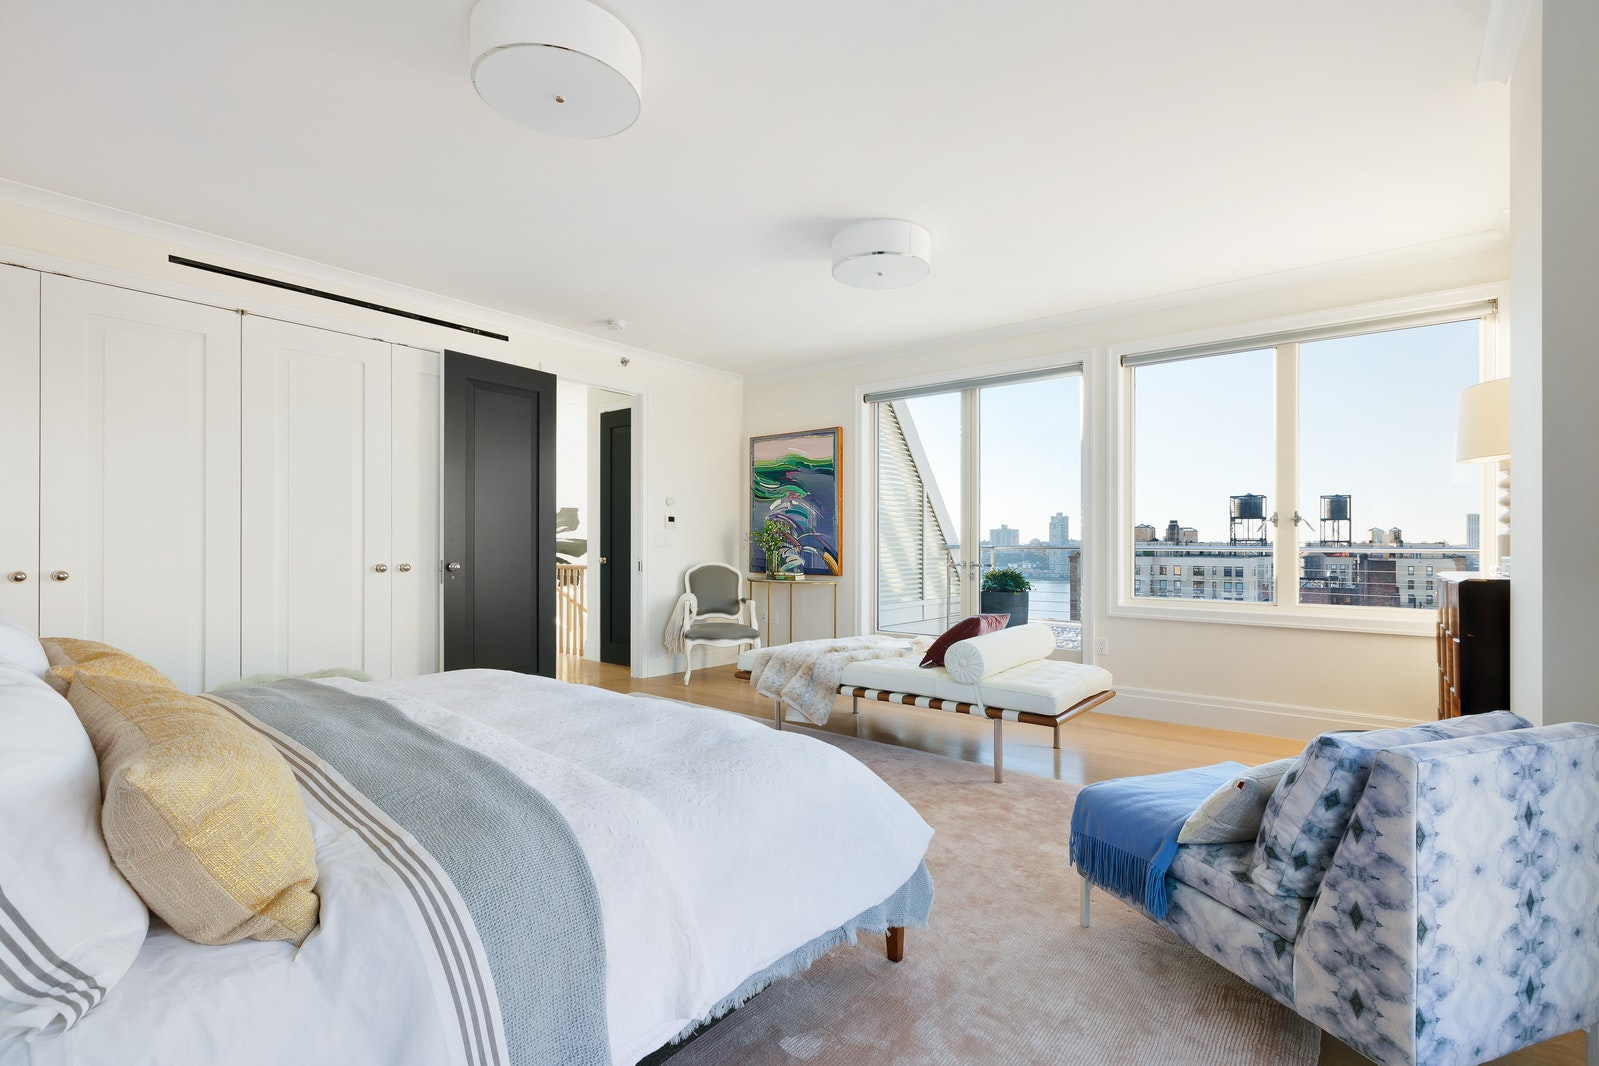 498 WEST END AVENUE PH, Upper West Side, $14,950,000, Web #: 19162124